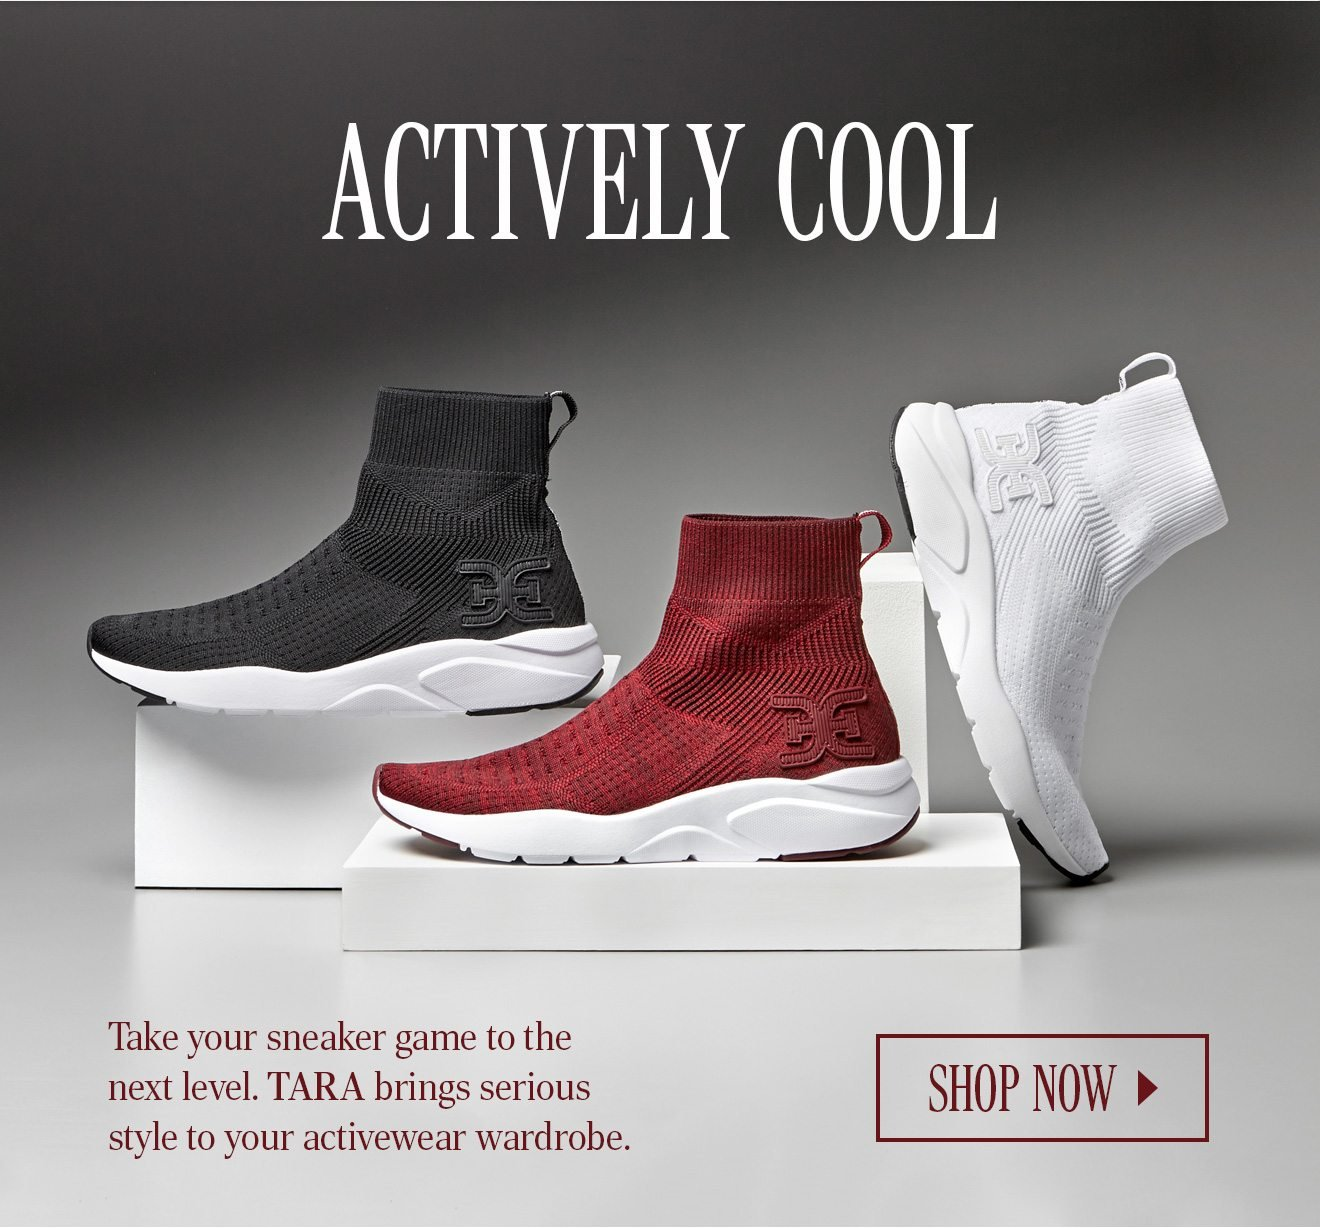 3c20589f0871 Take your sneaker game to the next level. Tara brings serious style